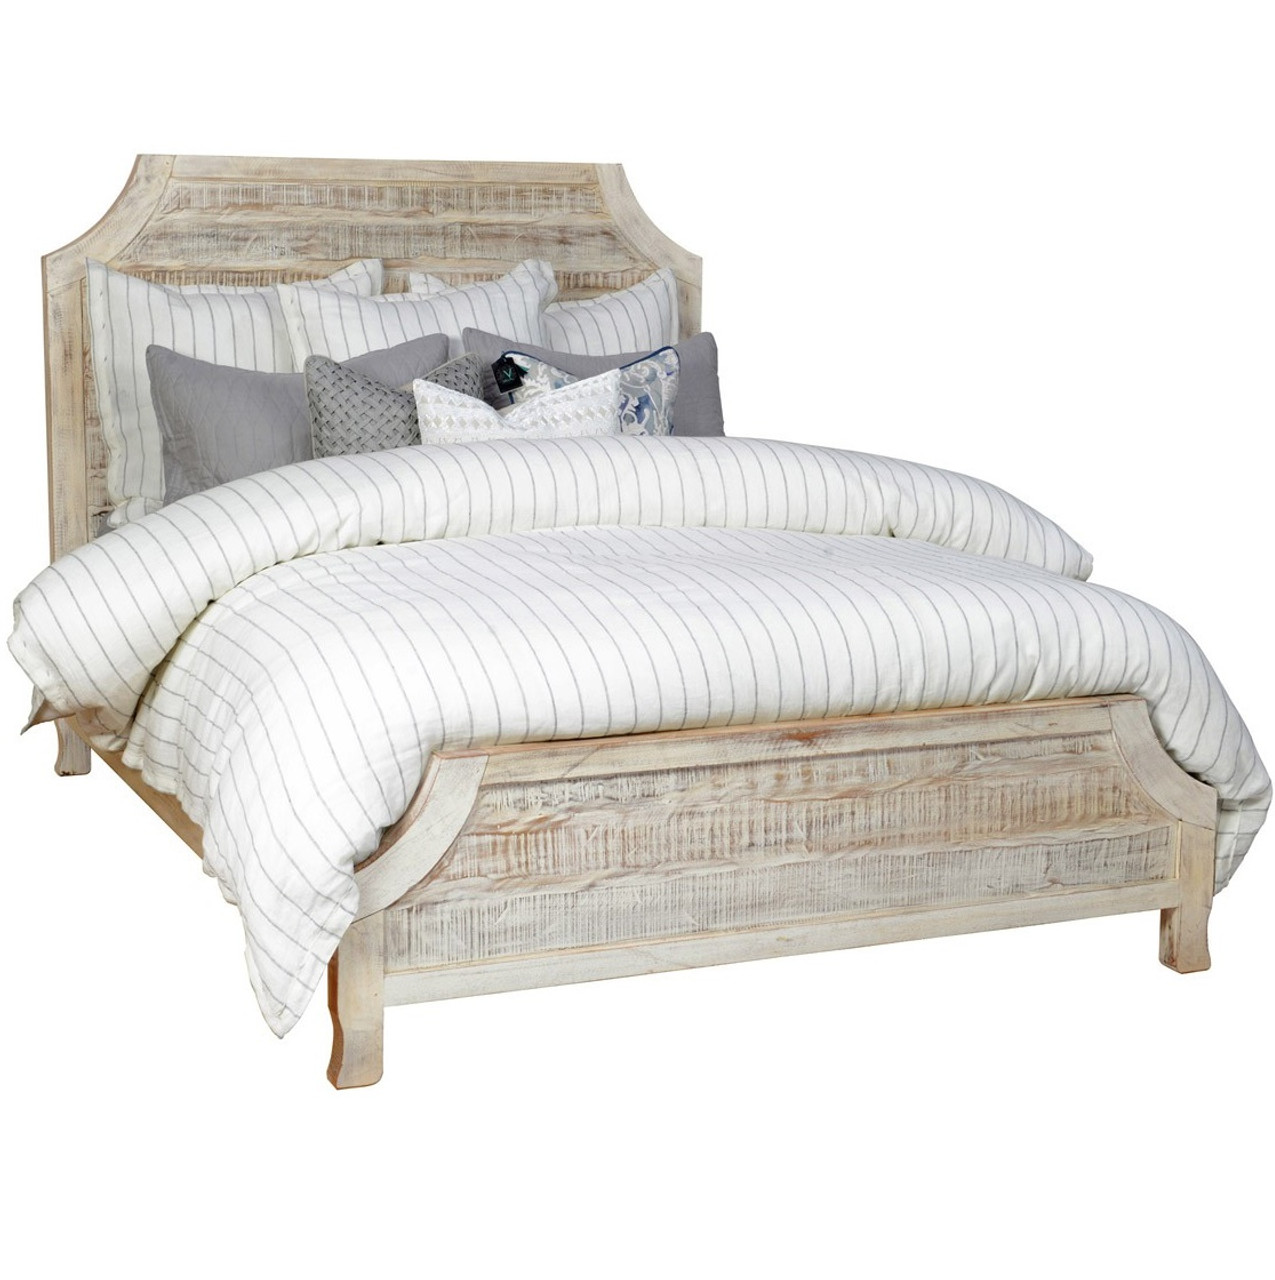 aria reclaimed wood california king bed - Wood California King Bed Frame